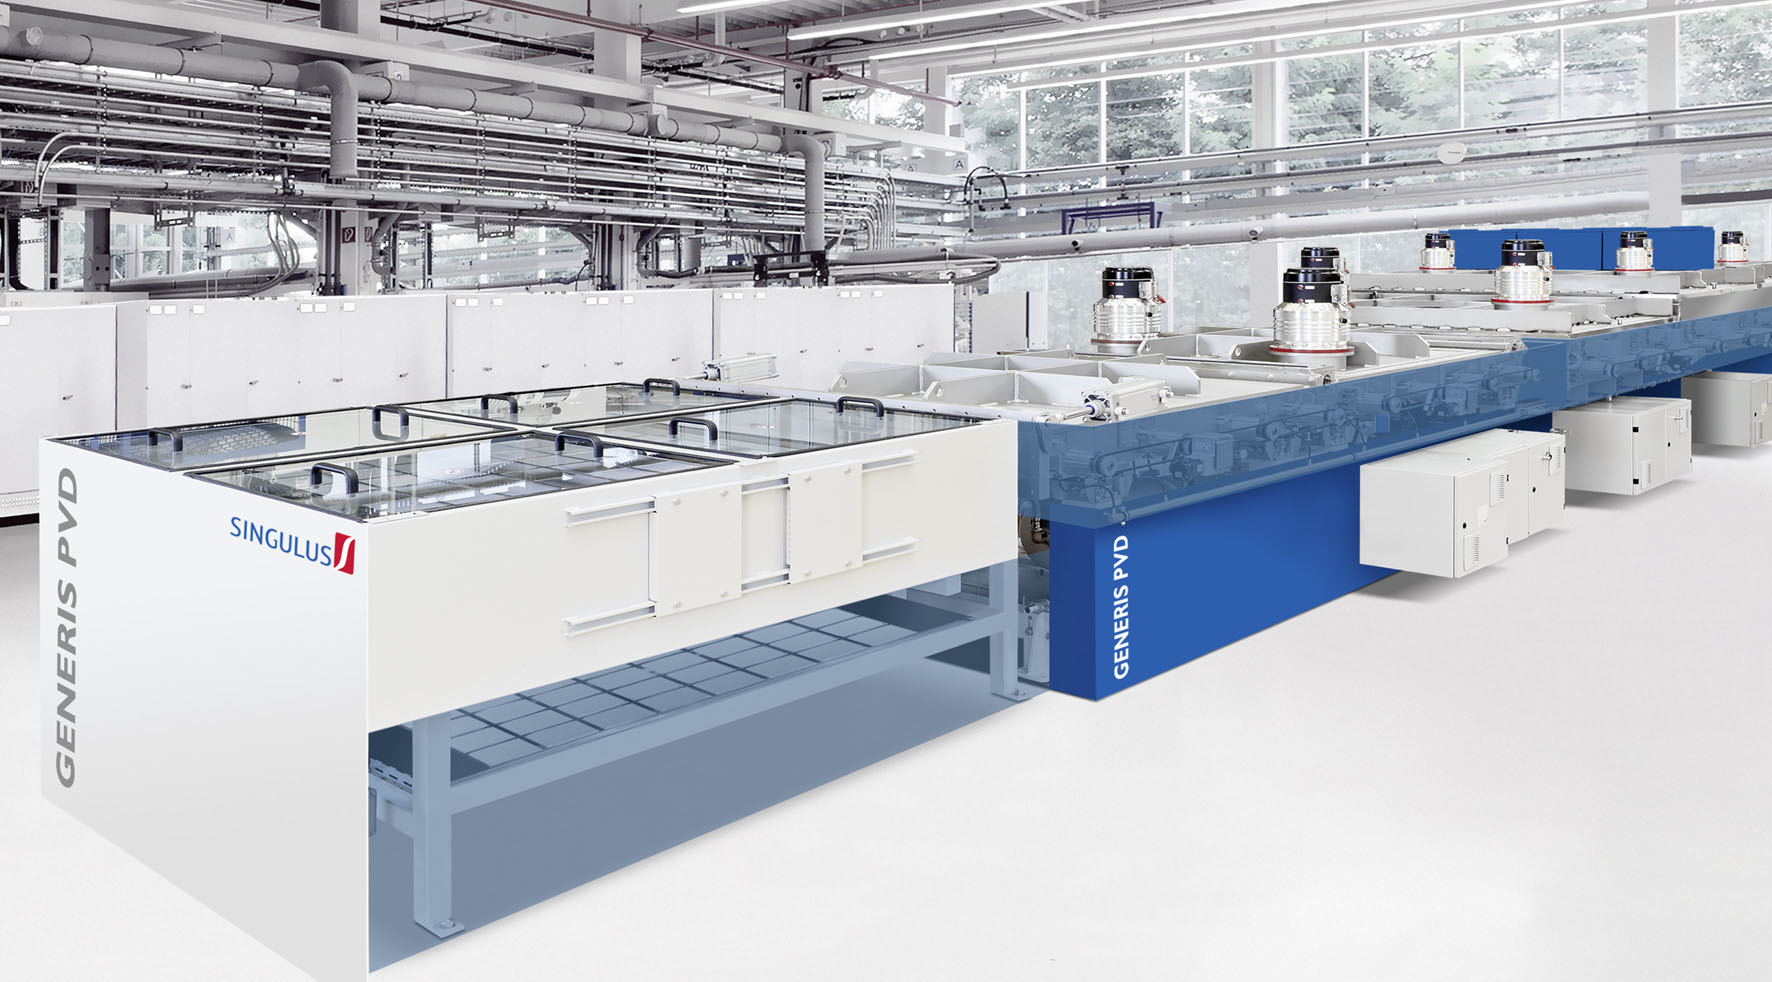 With the GENERIS PVD sputtering system, contact layers can be deposited on the front and rear of the Si wafers without the need to turn the wafers between coating processes and without vacuum interruption.